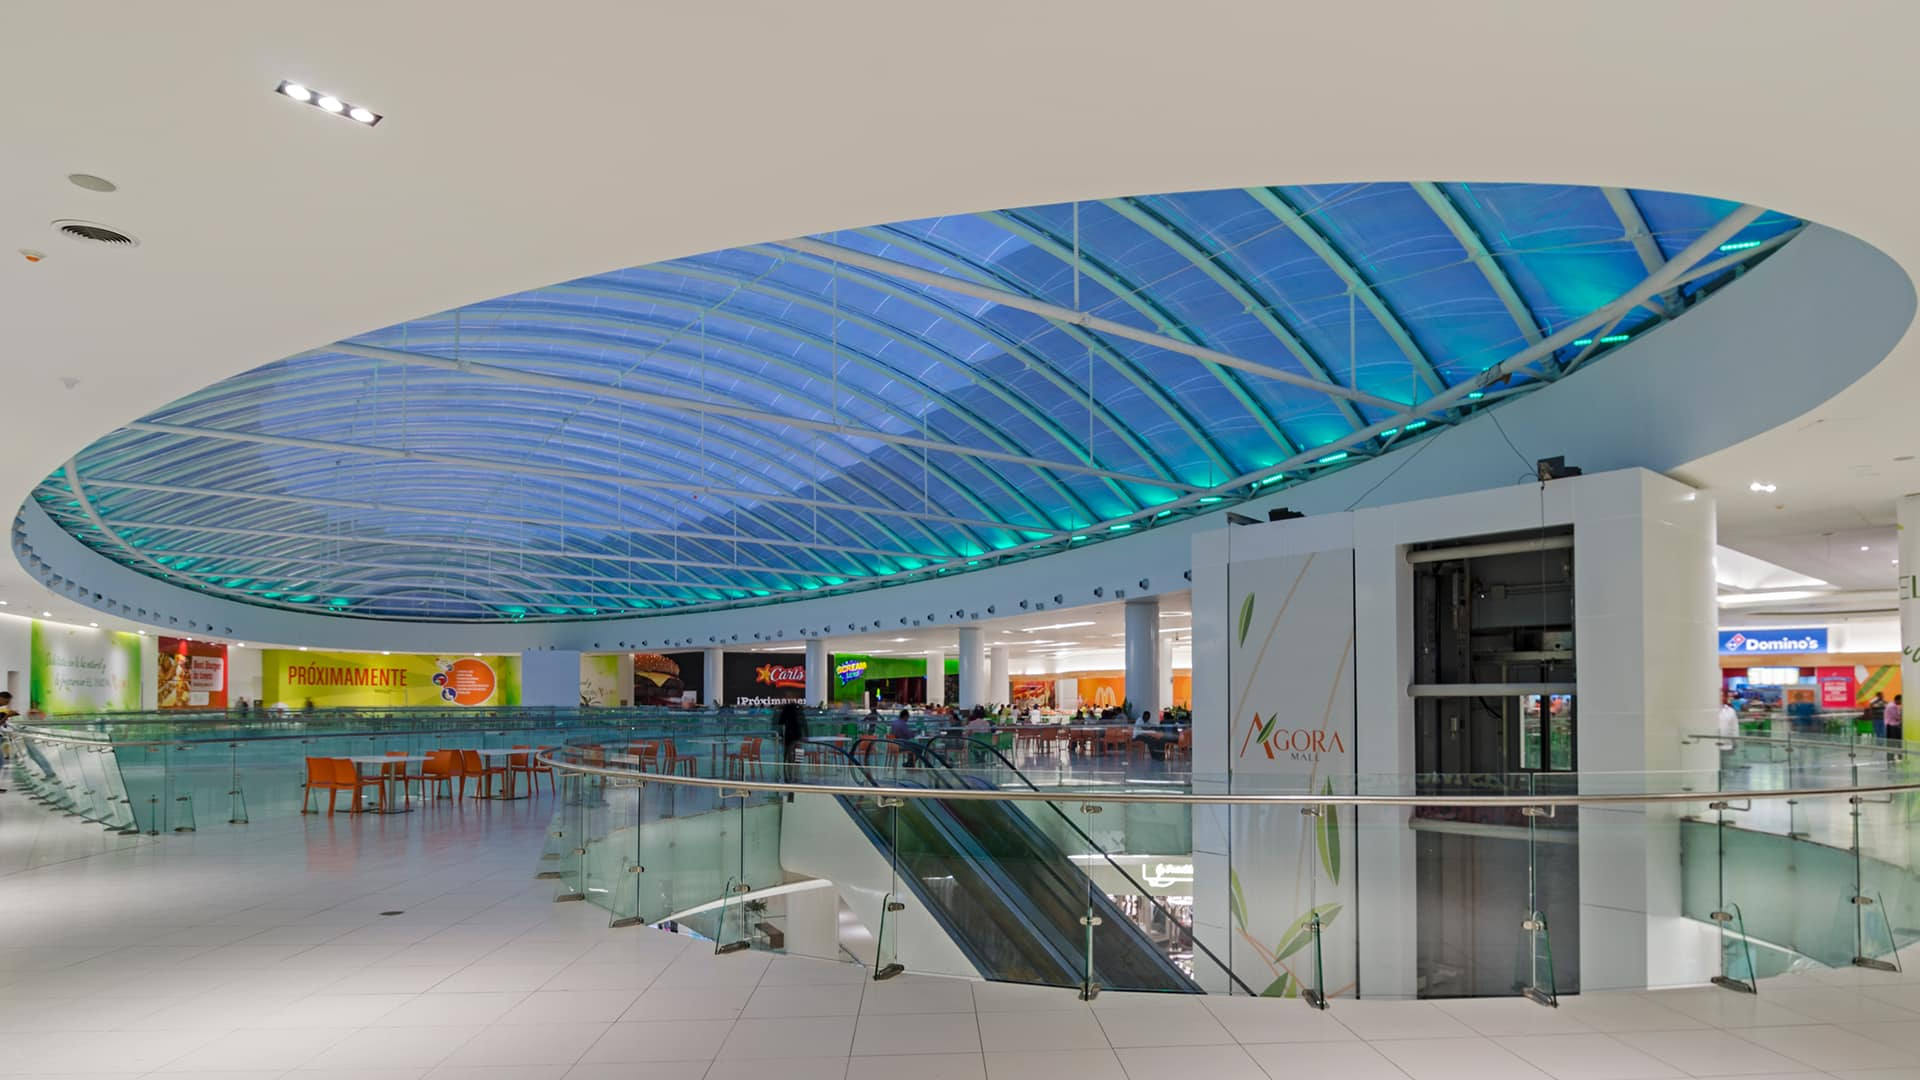 The  light-filled Agora Mall includes a huge Texlon® ETFE dome roof and three other smaller ETFE skylights for a great shopping experience.